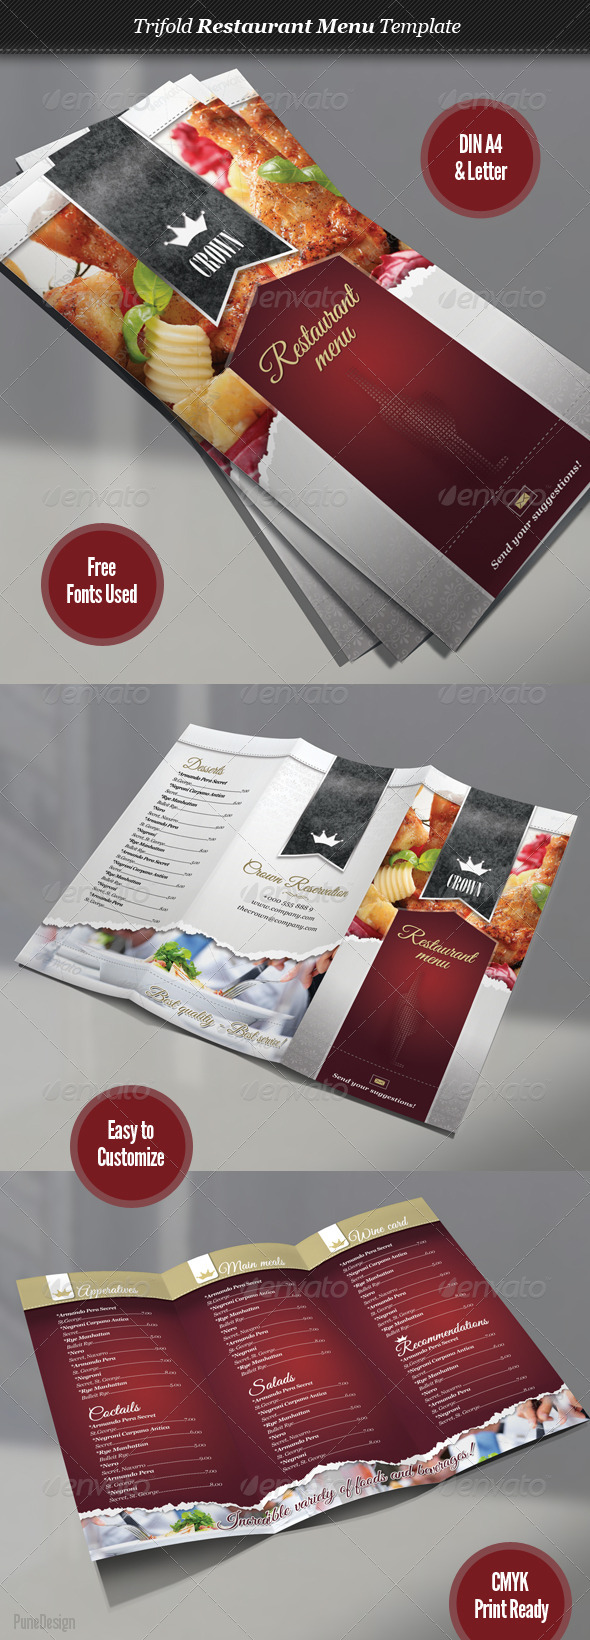 GraphicRiver Trifold Restaurant Menu Template 2784757